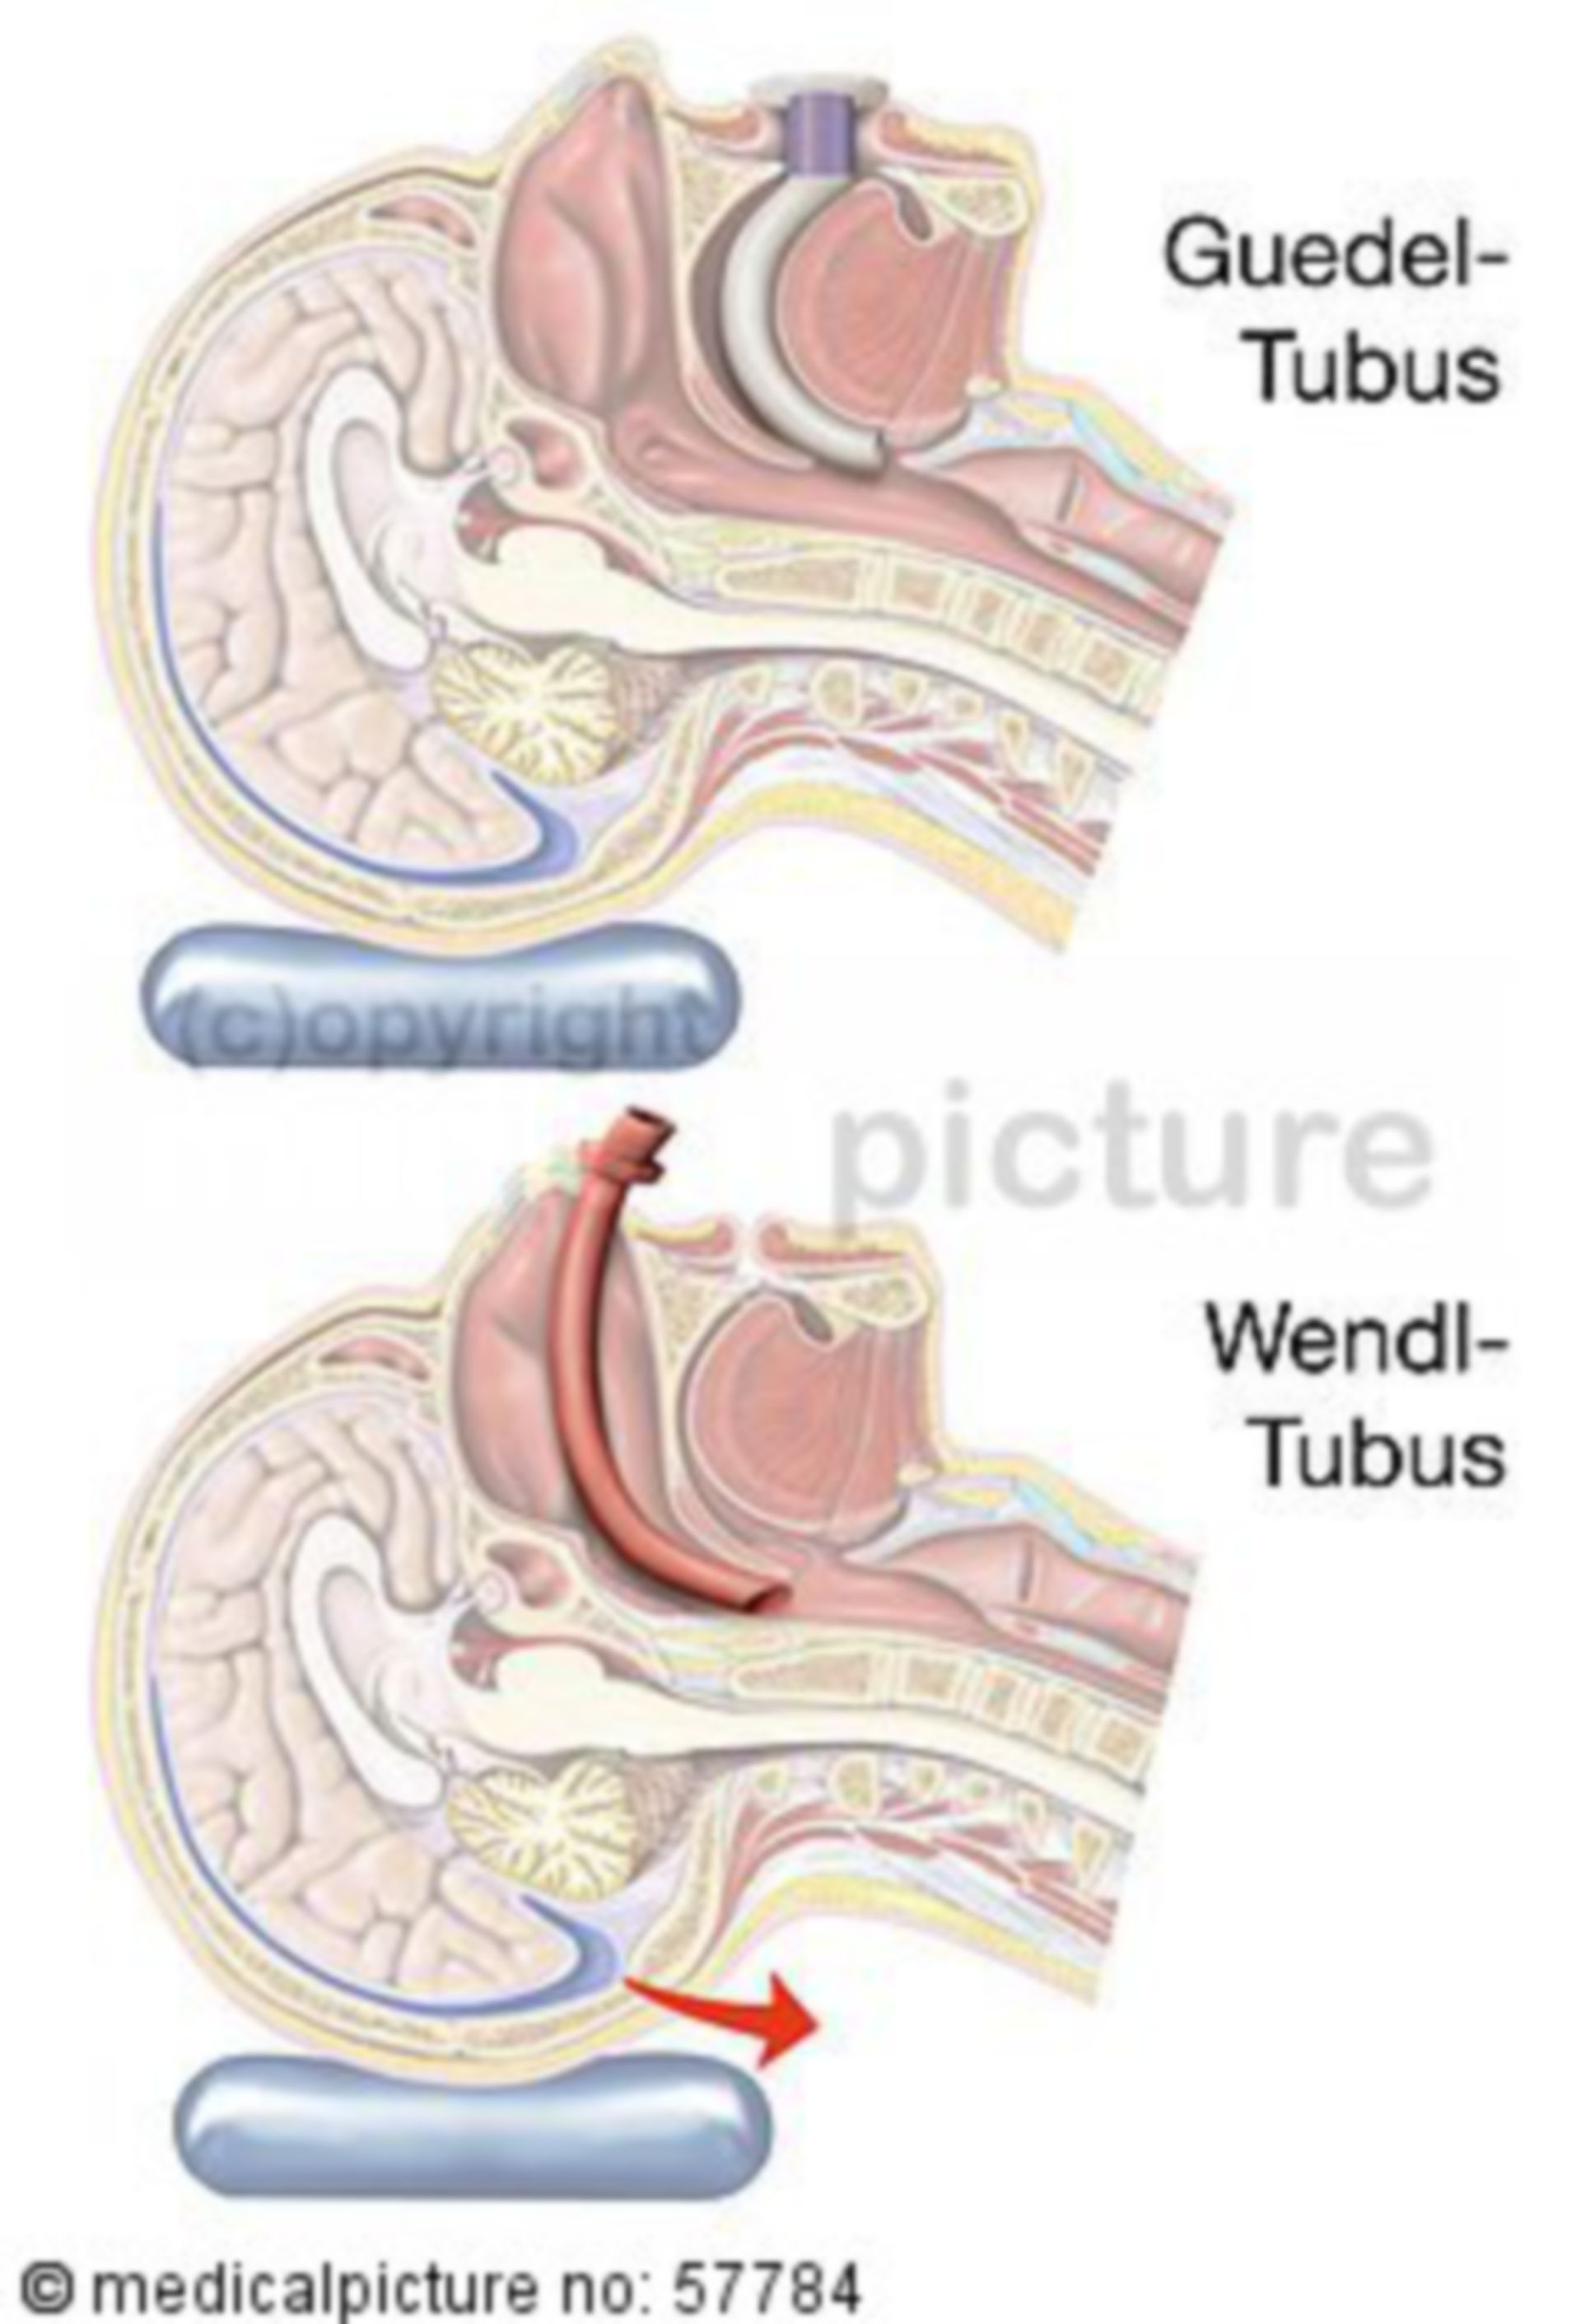 Comparison of Guedel and Wendle tube